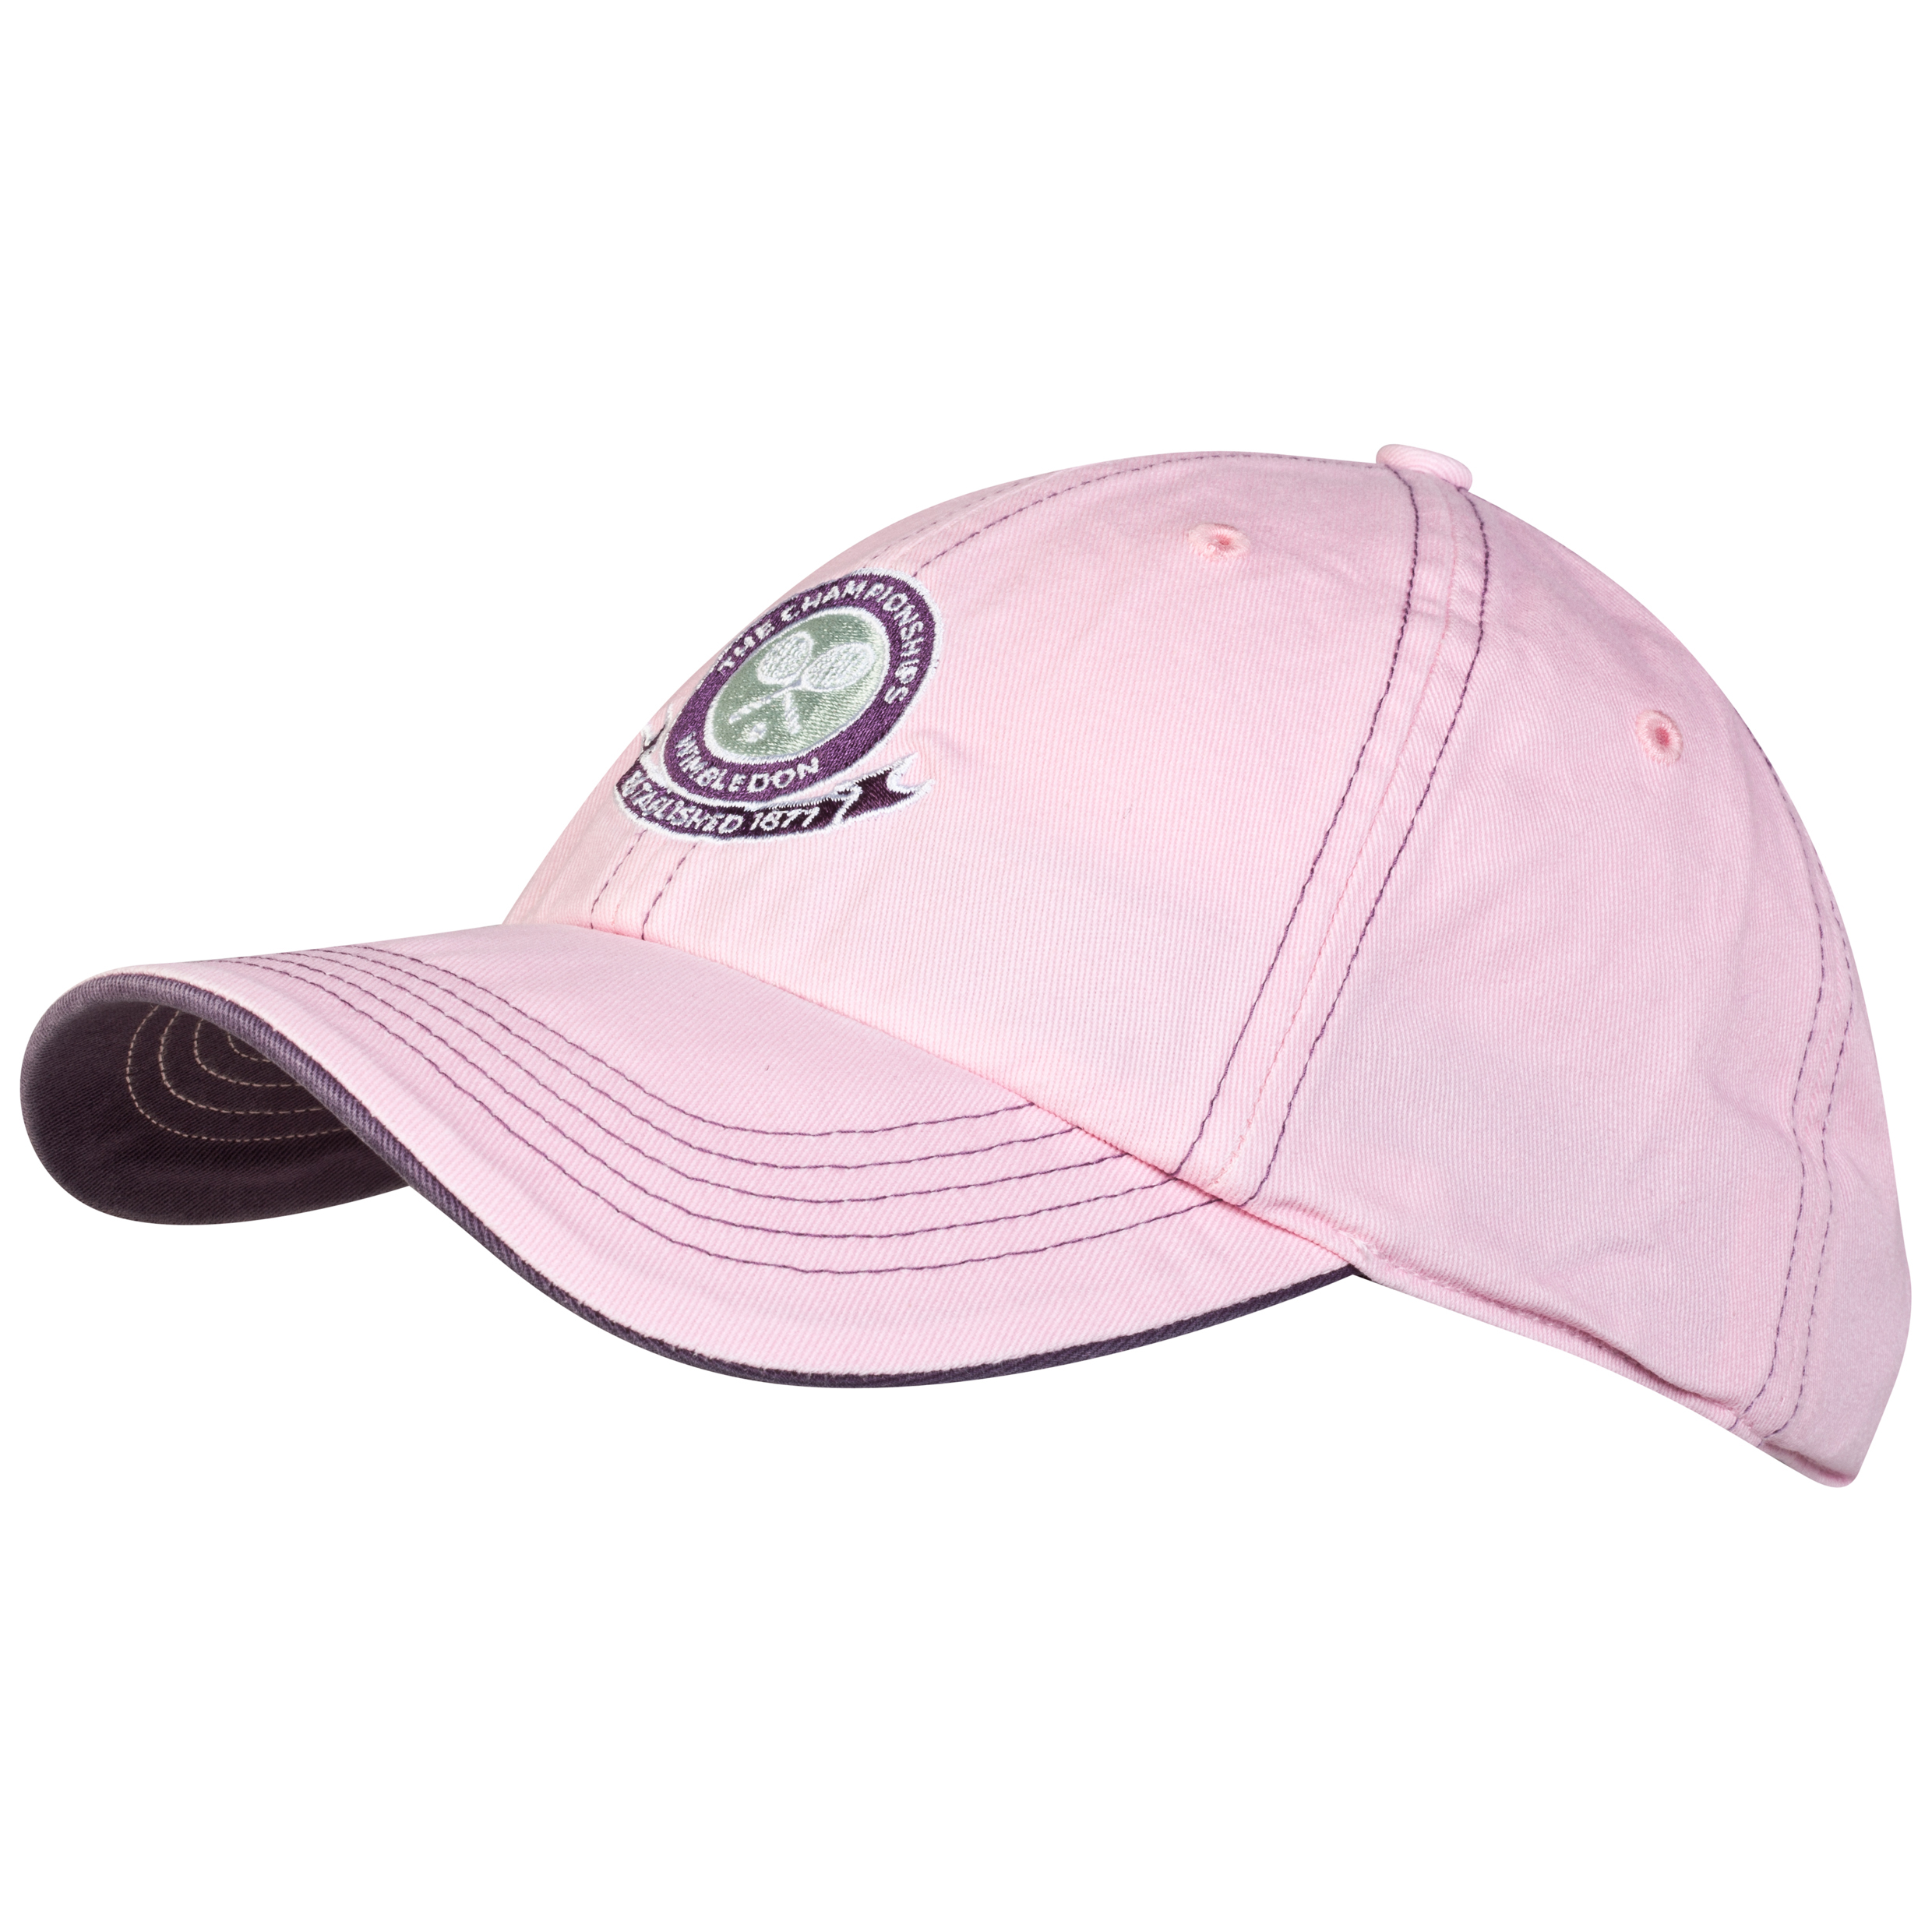 Wimbledon Logo Embroidered Cap - Ladies - Light Pink